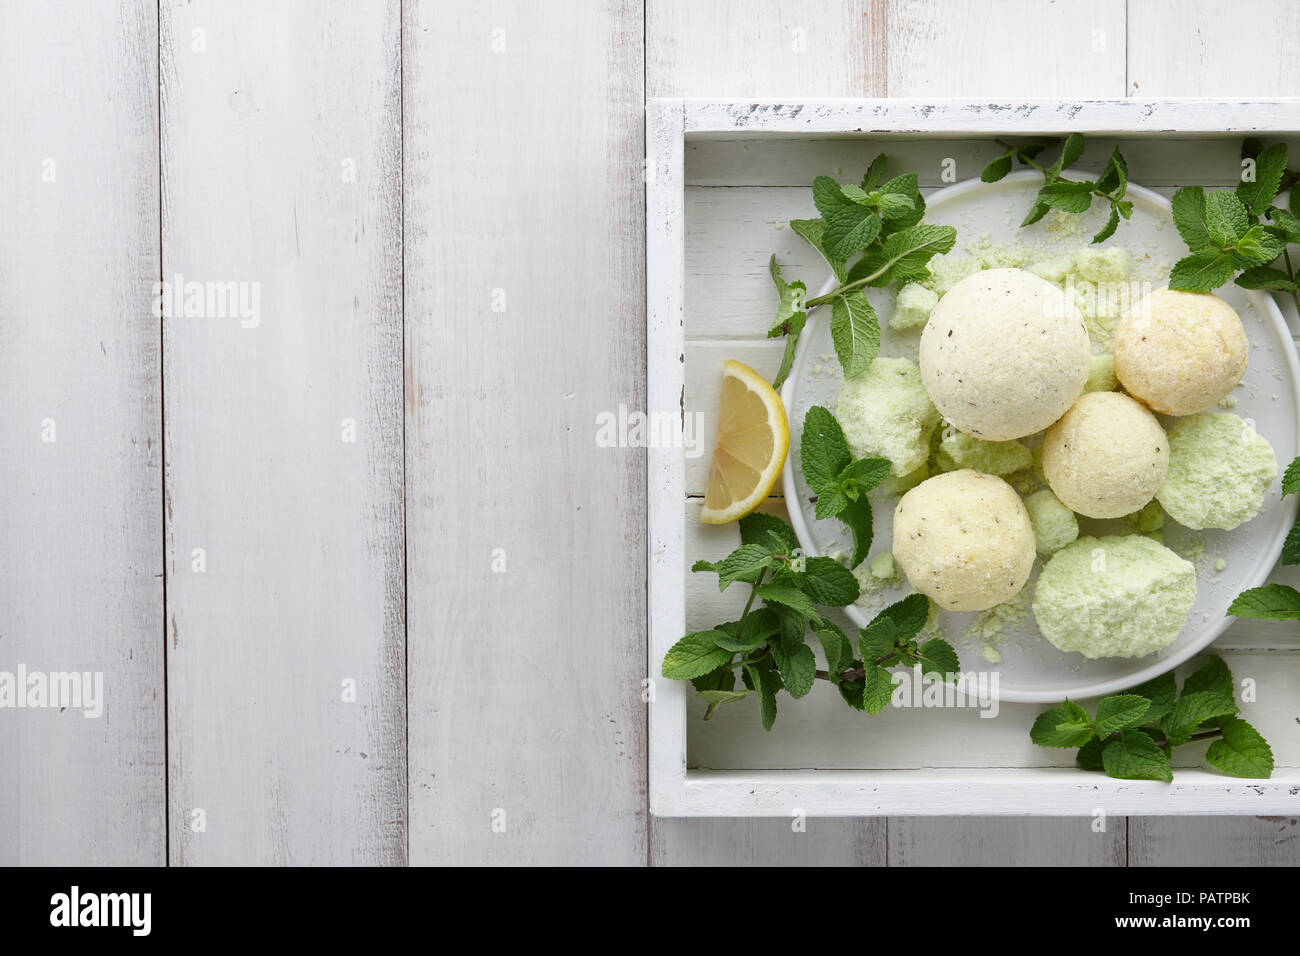 Handmade mint bath bombs with fresh herbs in white tray - Stock Image